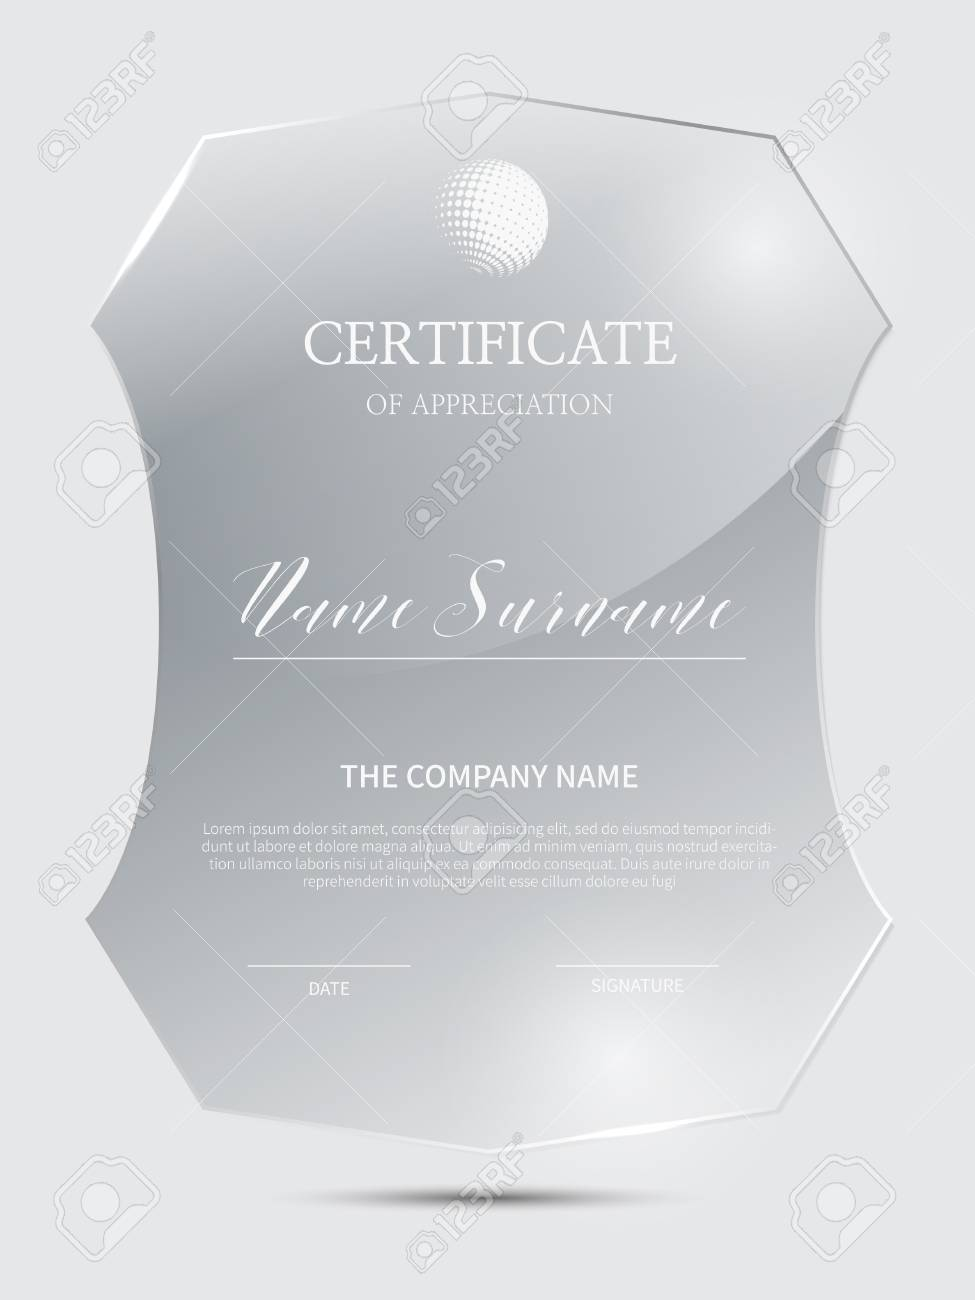 Certificate Frame Background With Glass Material Lizenzfrei Nutzbare